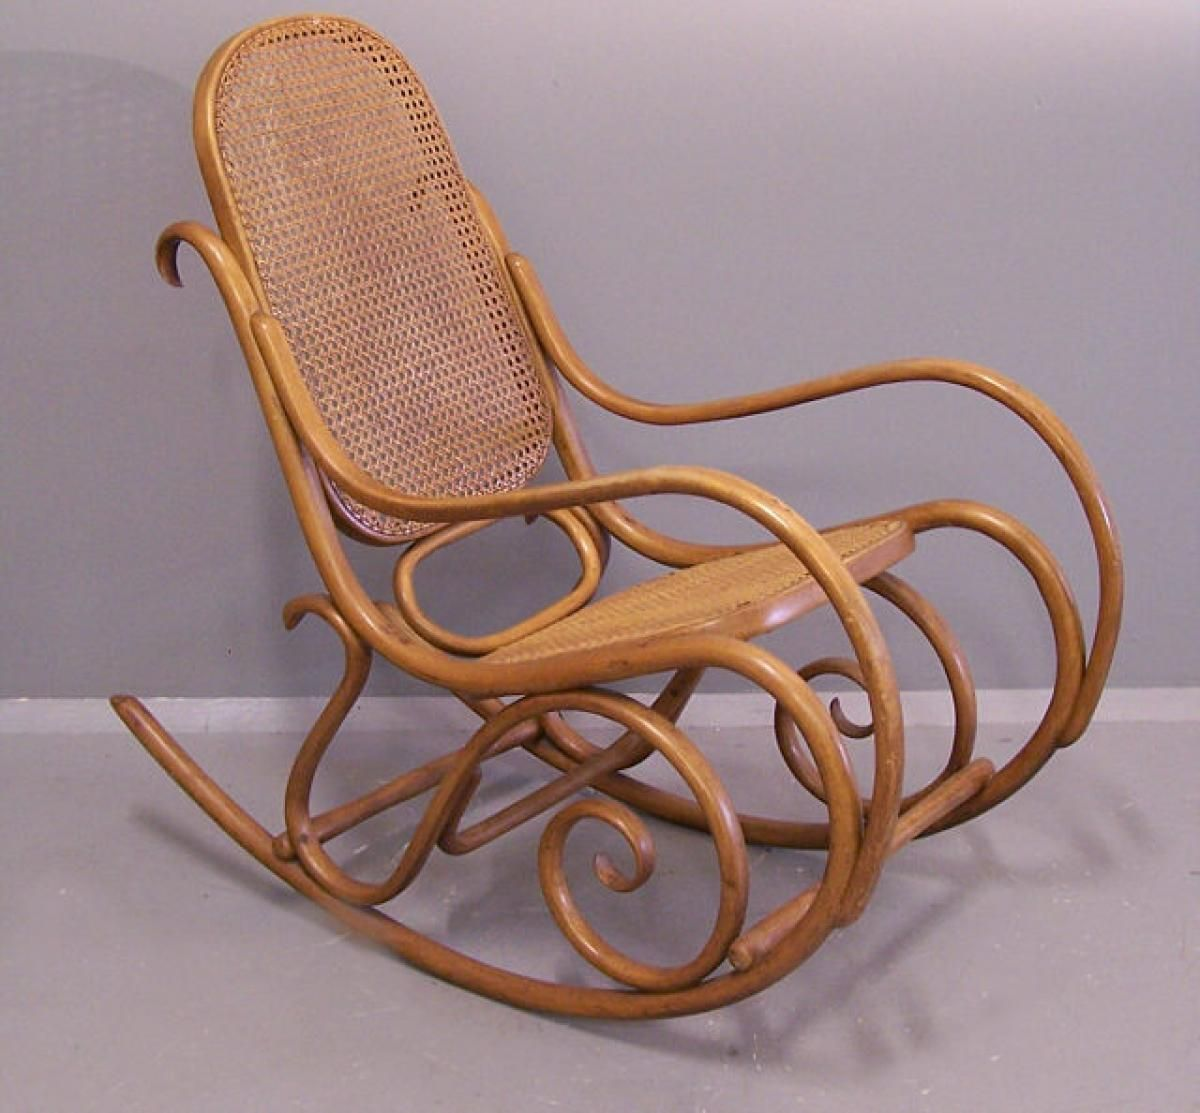 Bentwood rocking chair value - Gebruder Thonet Bentwood Rocking Chair Number 7025